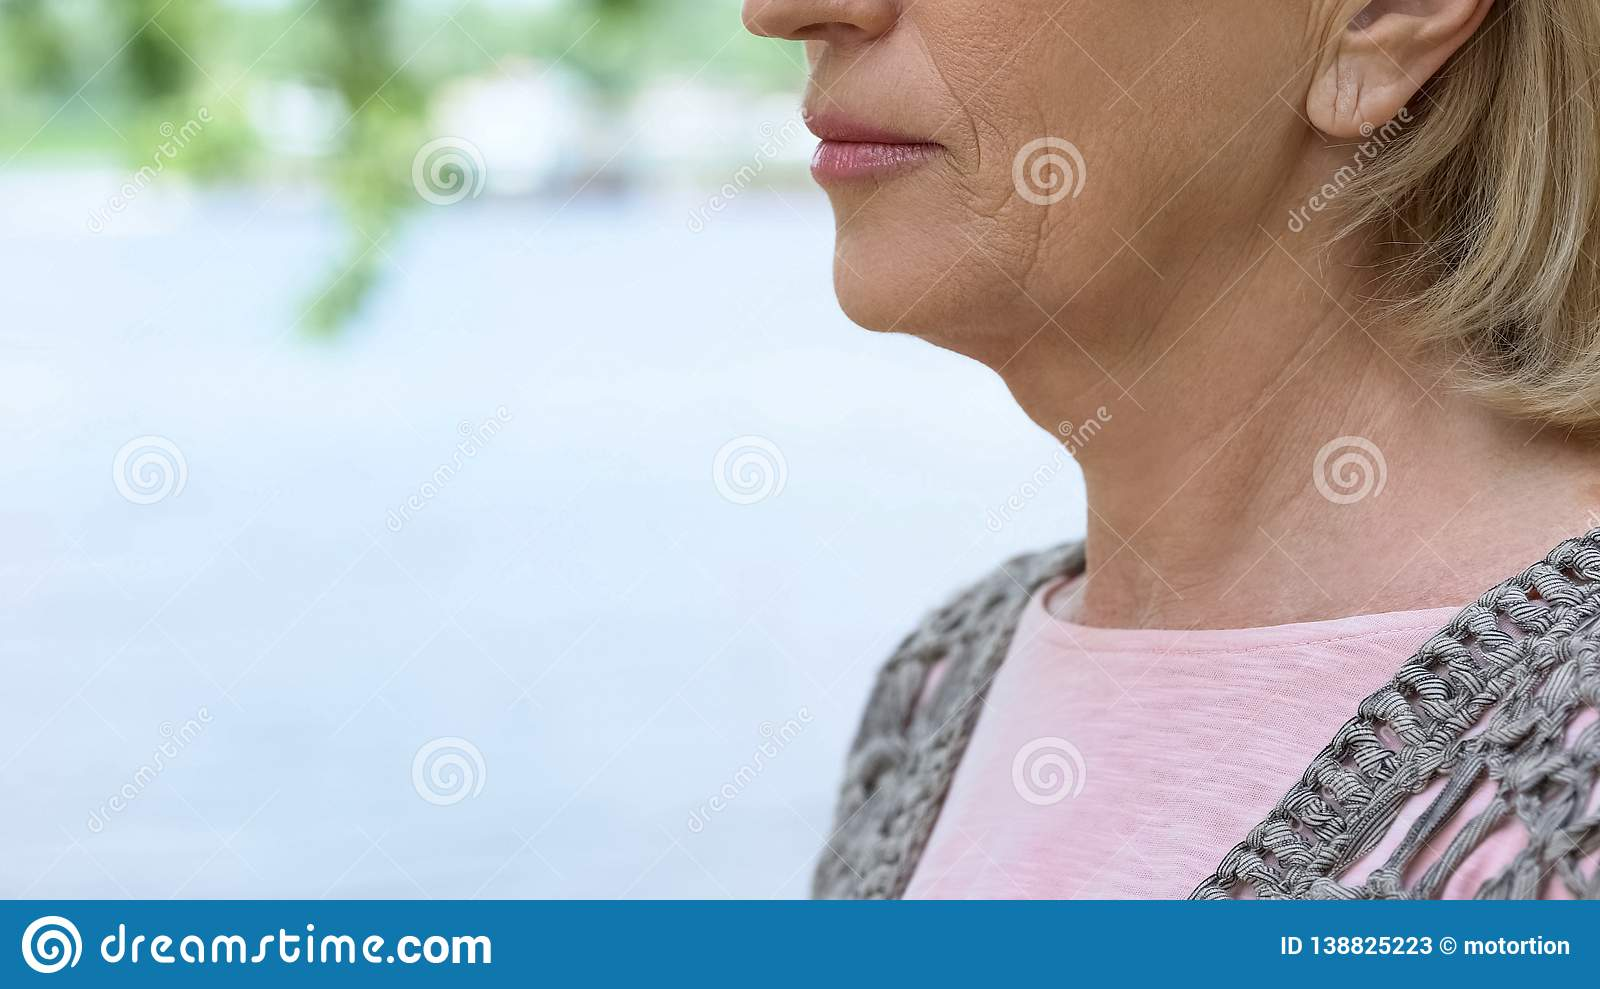 Wrinkled old woman close up, thyroid gland illness, medical examination, health